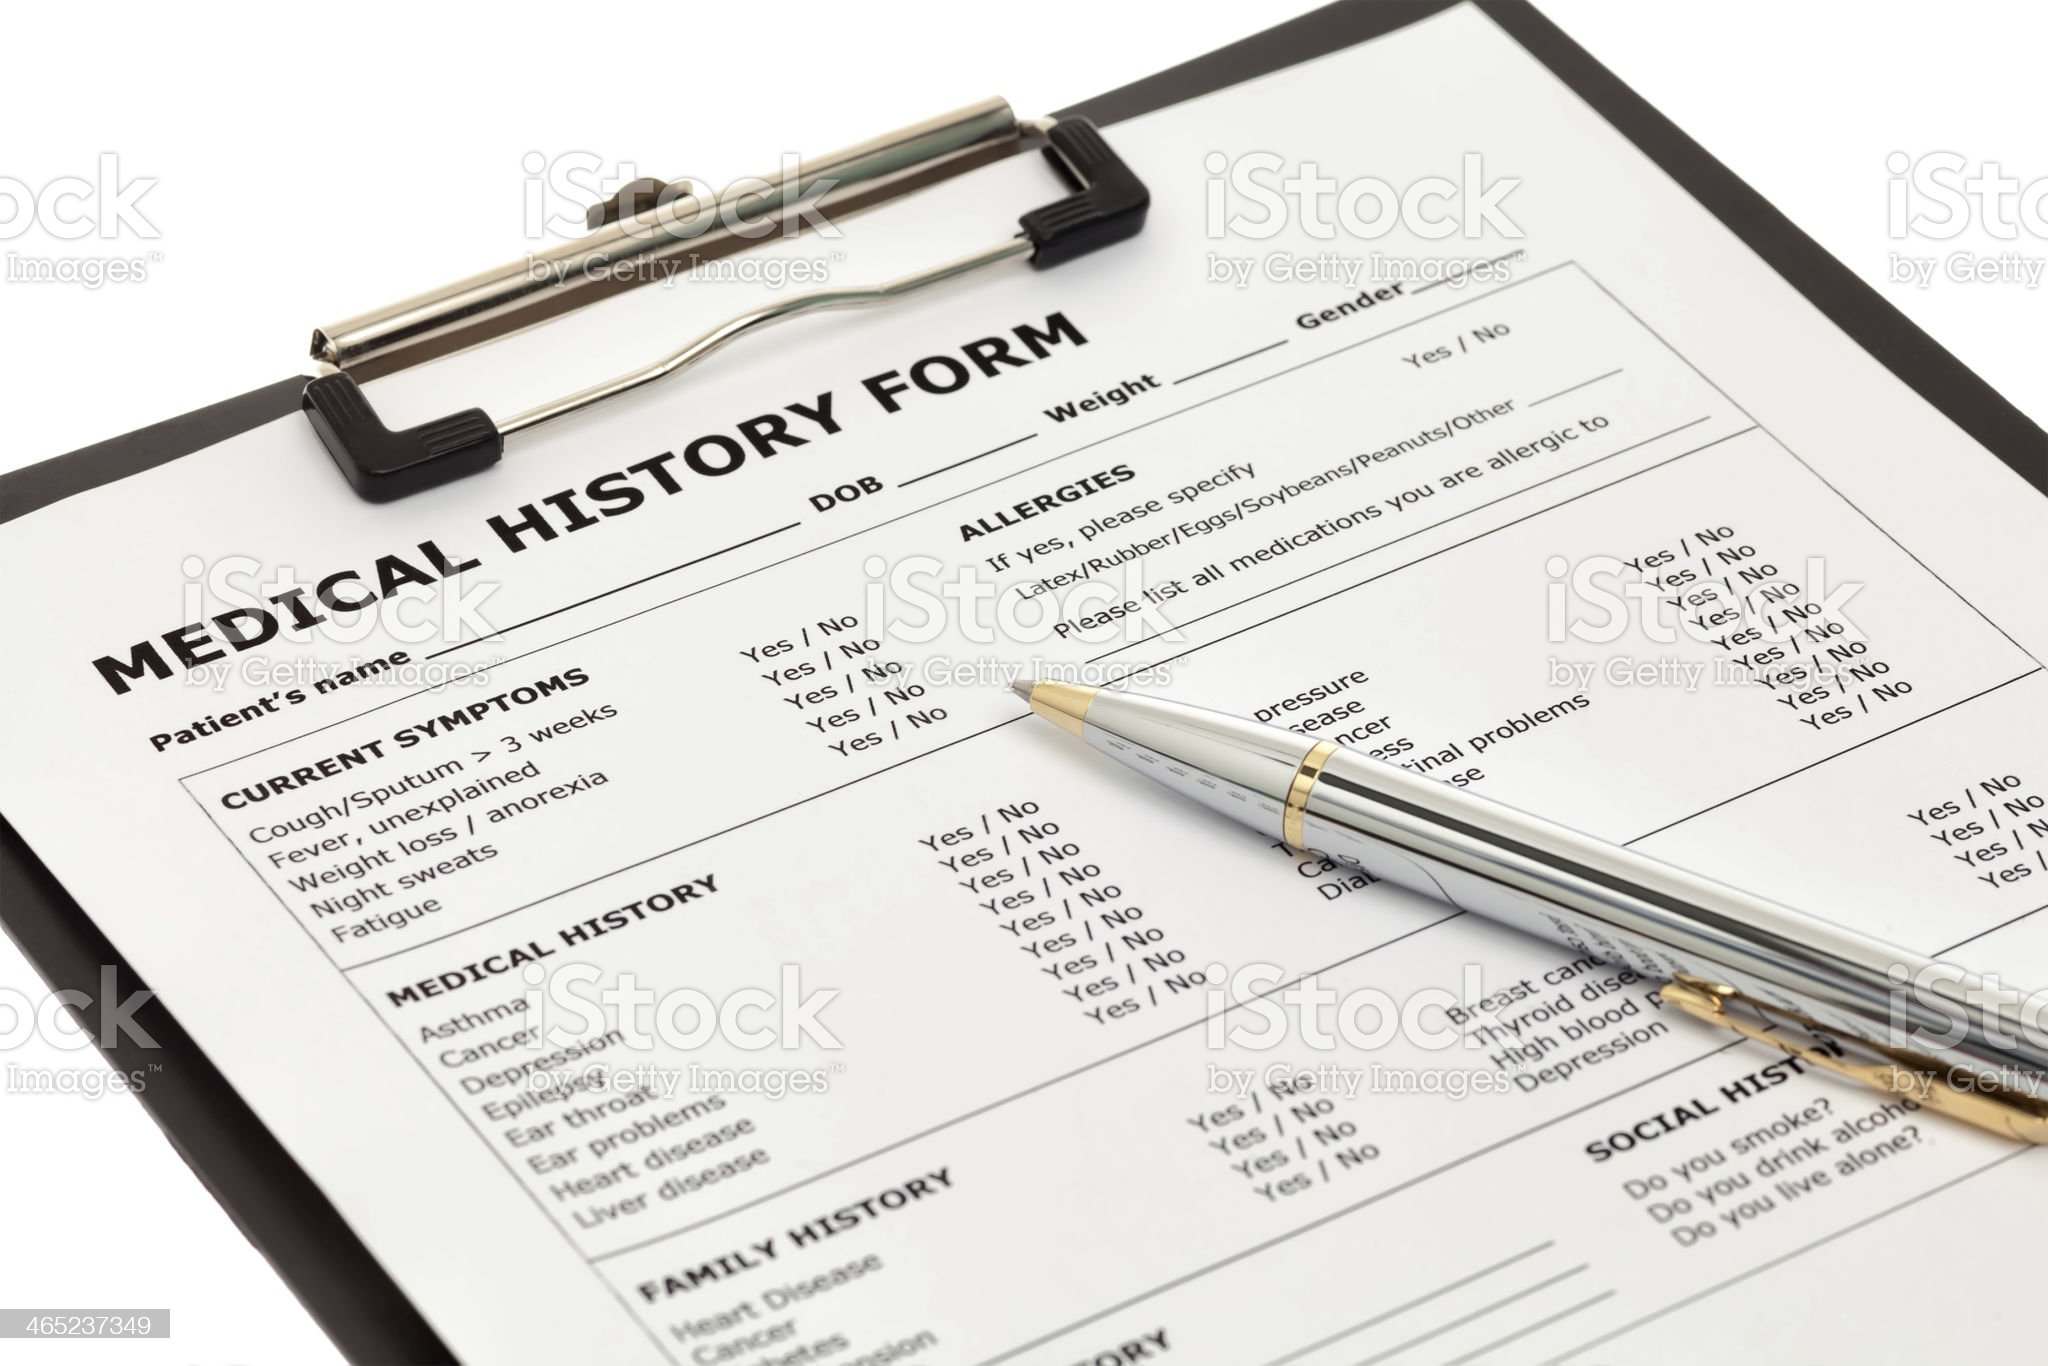 Patient medical history form royalty-free stock photo